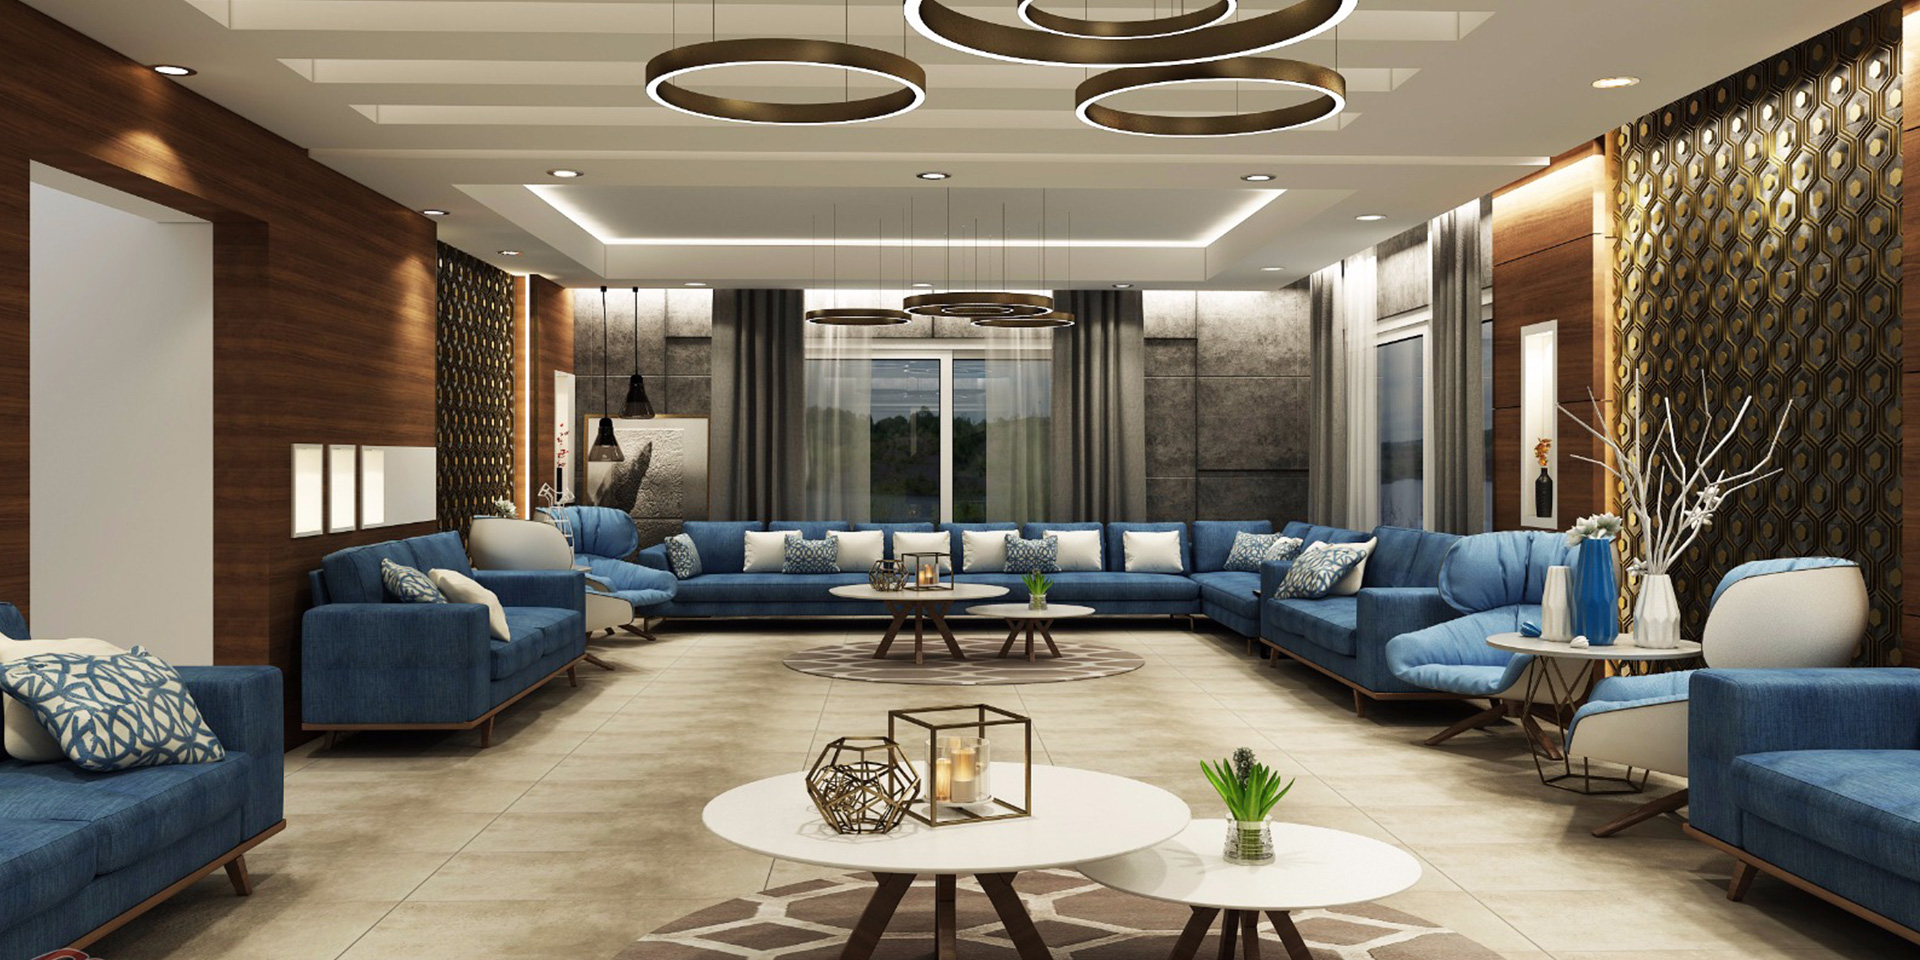 Top 10 interior design companies in dubai uae for Interior design services